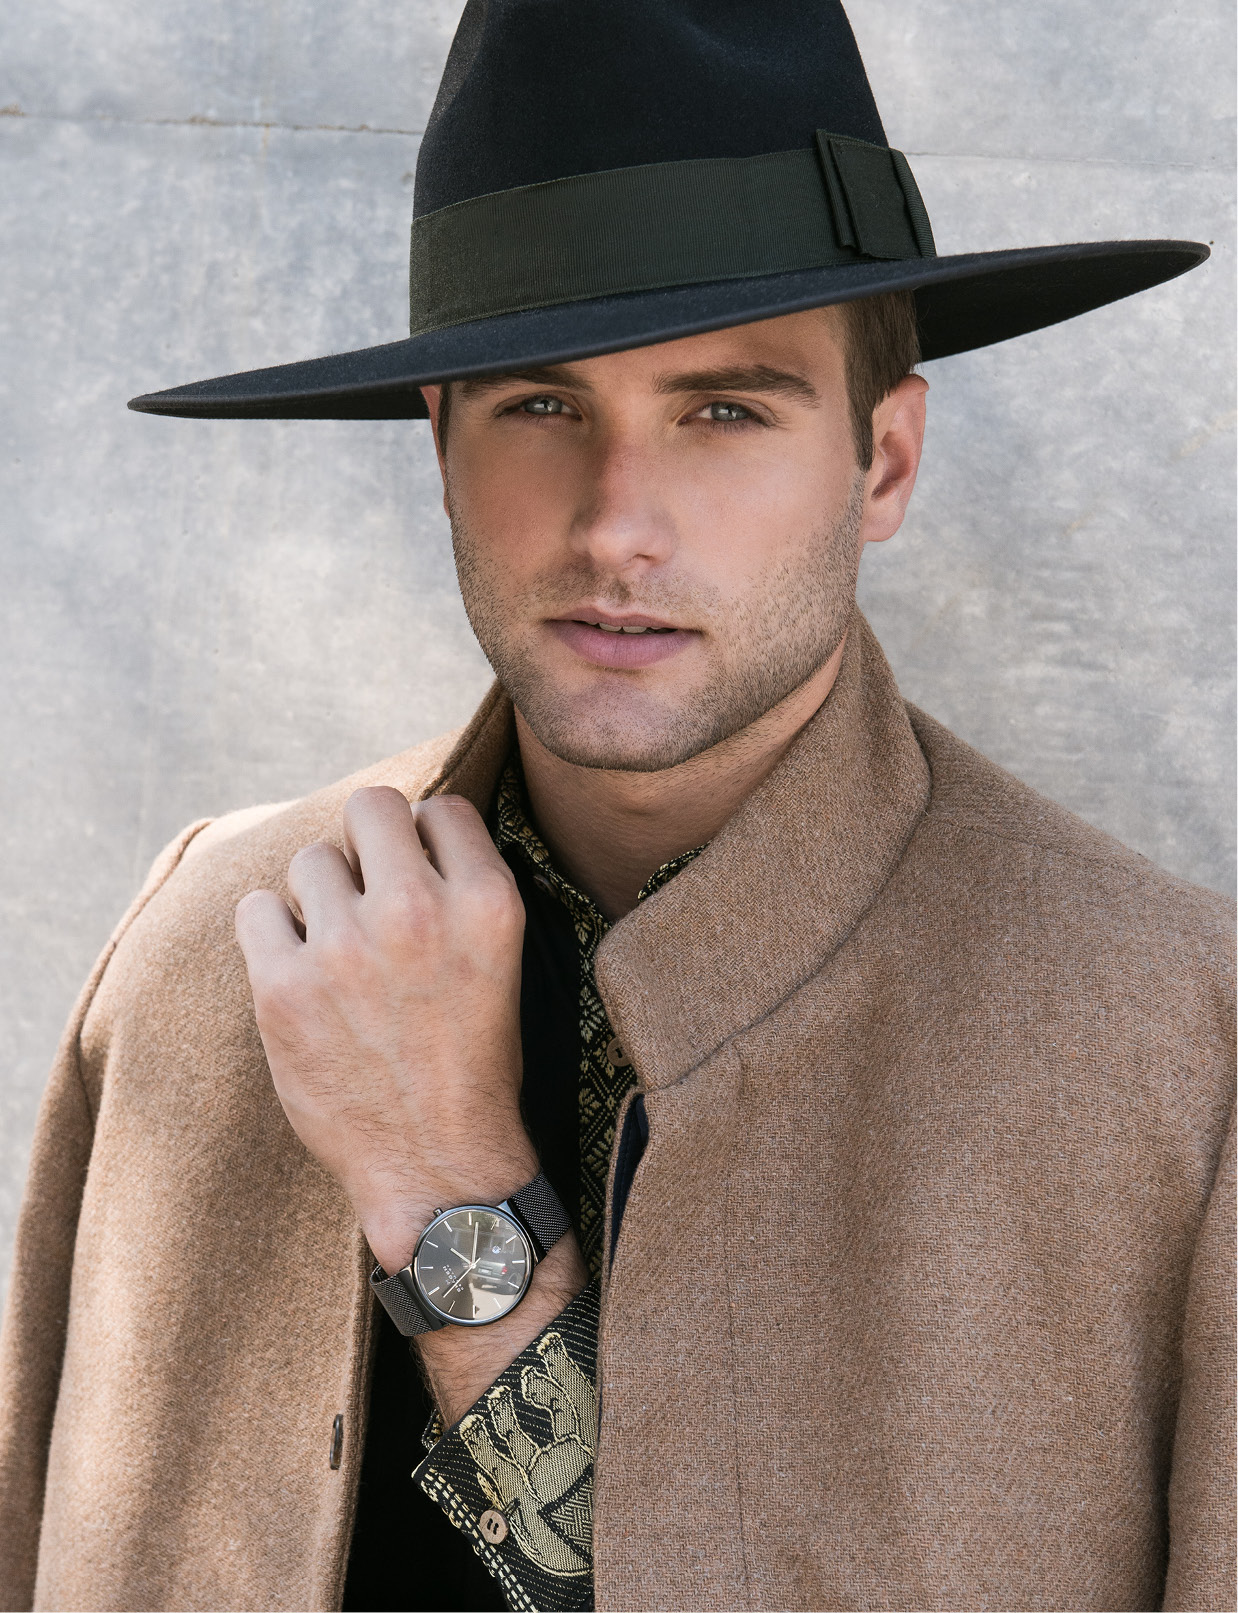 Mysterious by NPN Black Elephant dress shirt, $160.00: MysteriousbyNPN.com. TraditionLK Camel coat, price upon request: TraditionLK.com.  Skagen Gunmetal mesh watch, $175: Belk. Stetson Tri-City hat, prices vary: Stetsonhat.com.